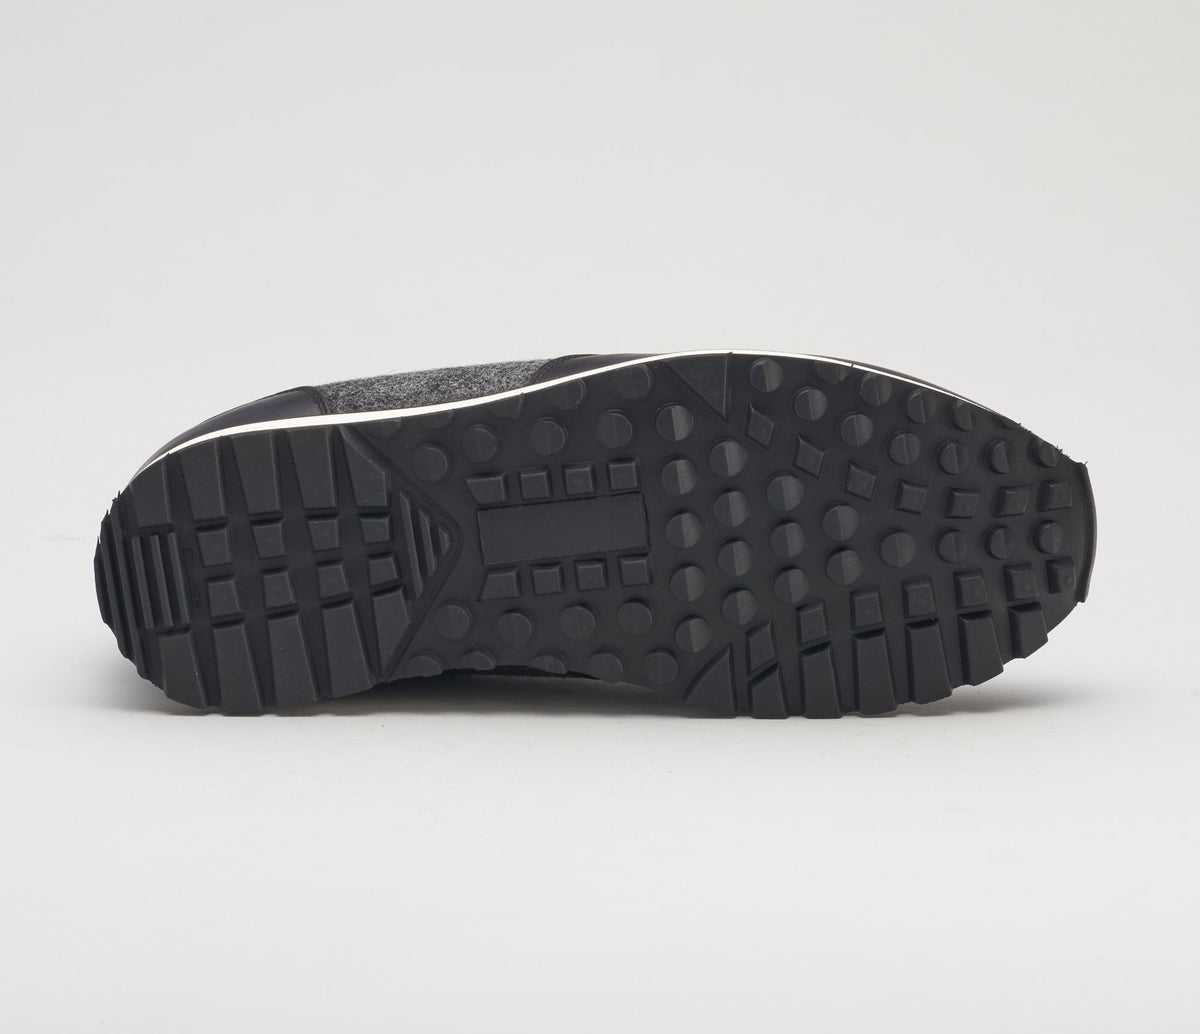 SB241 Wool / Calf Anthracite